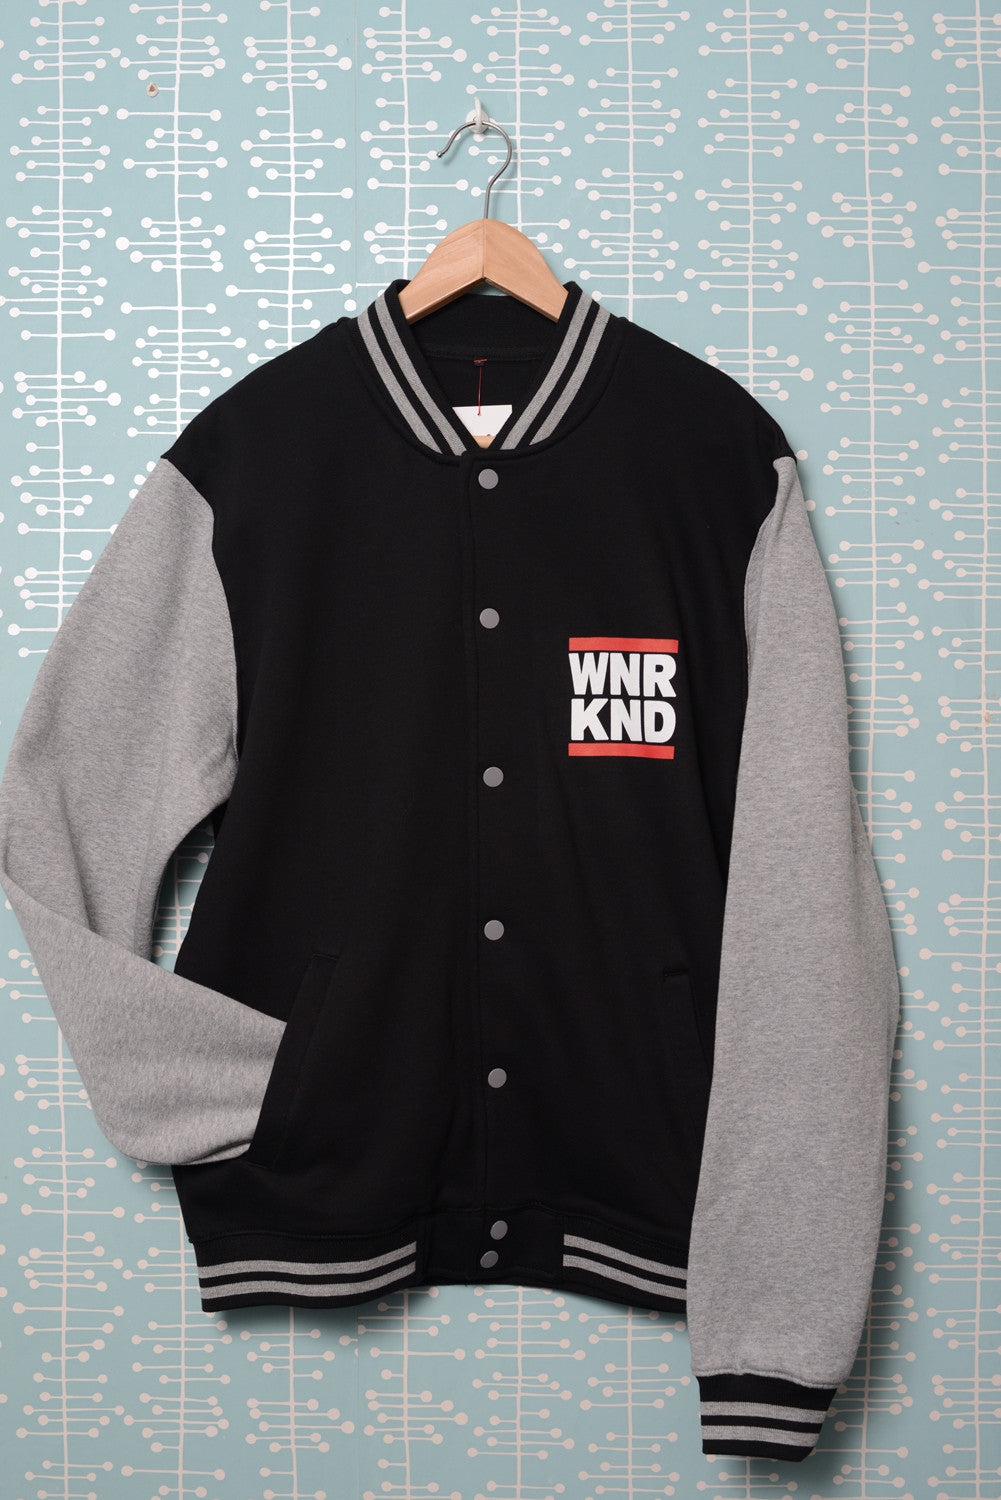 WNRKND Sweat College Jacket